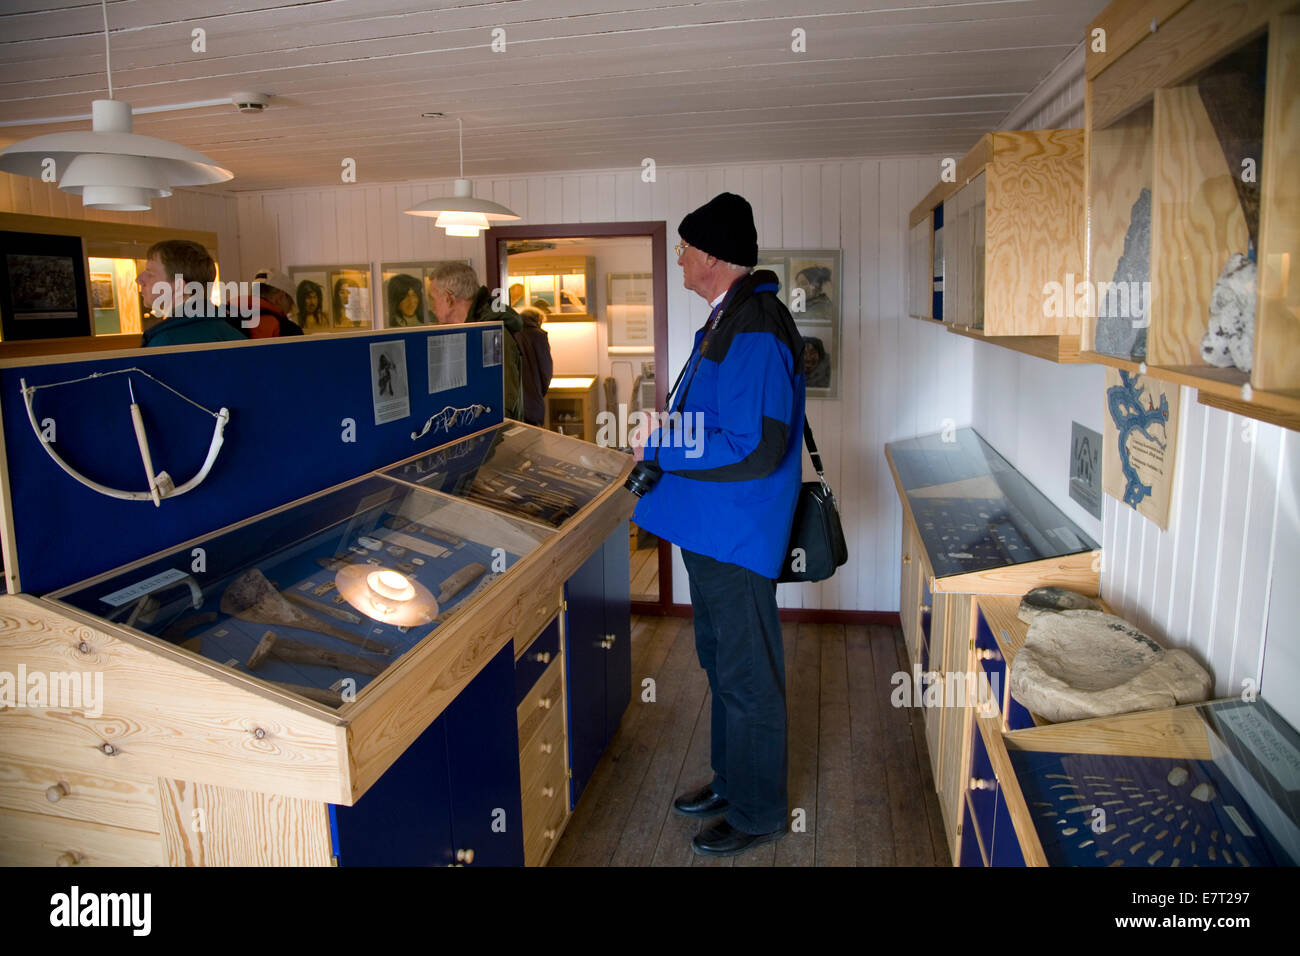 The Arctic explorer, Knud Rasmussen's home has been turned into a museum in Qaanaaq (or 'new Thule'), - Stock Image